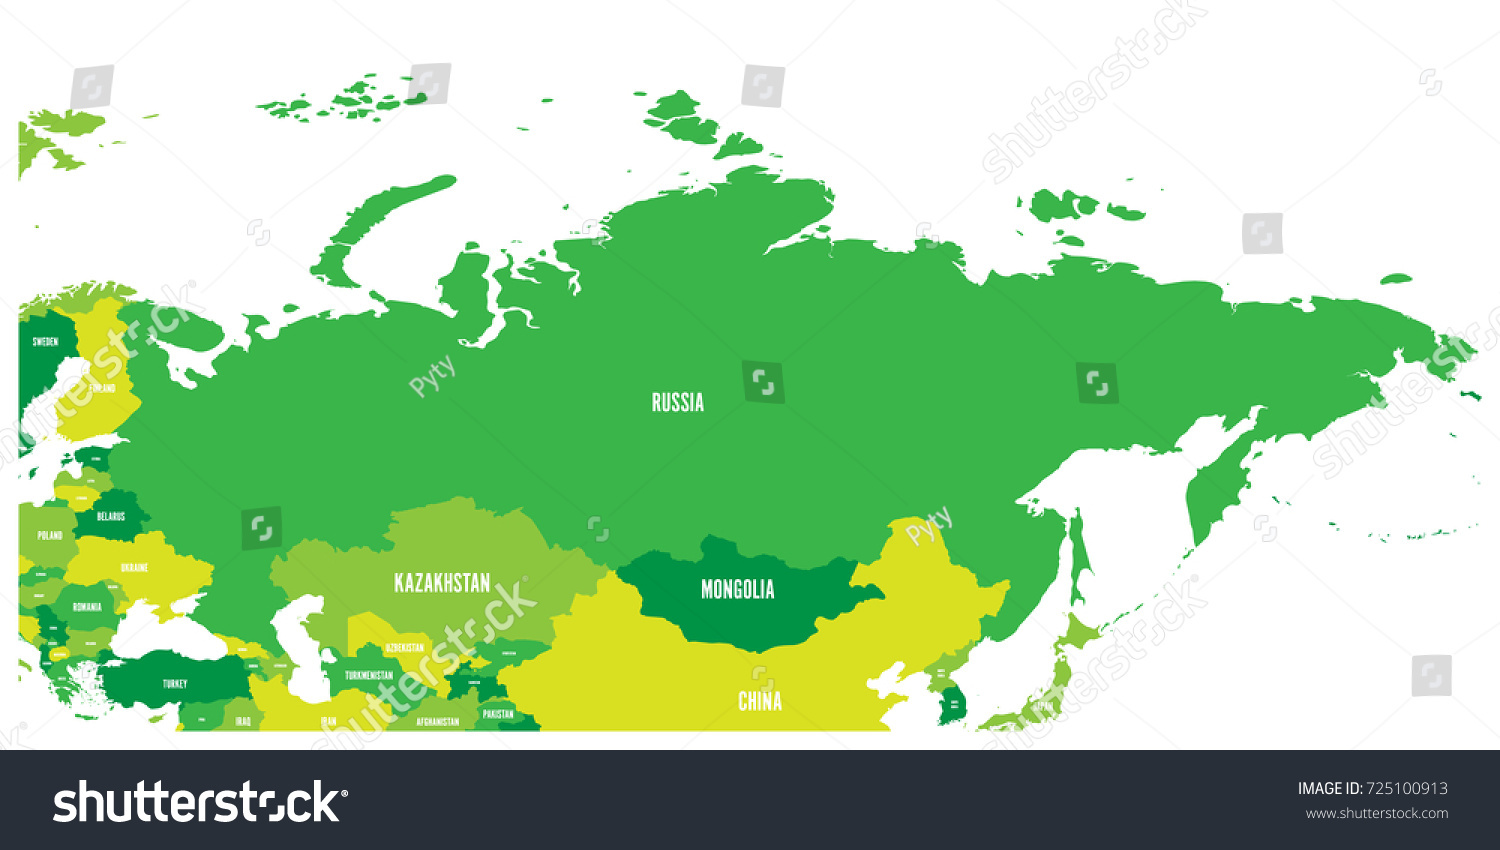 Political Map Russia Surrounding European Asian Stock Vector - Russia map and surrounding countries